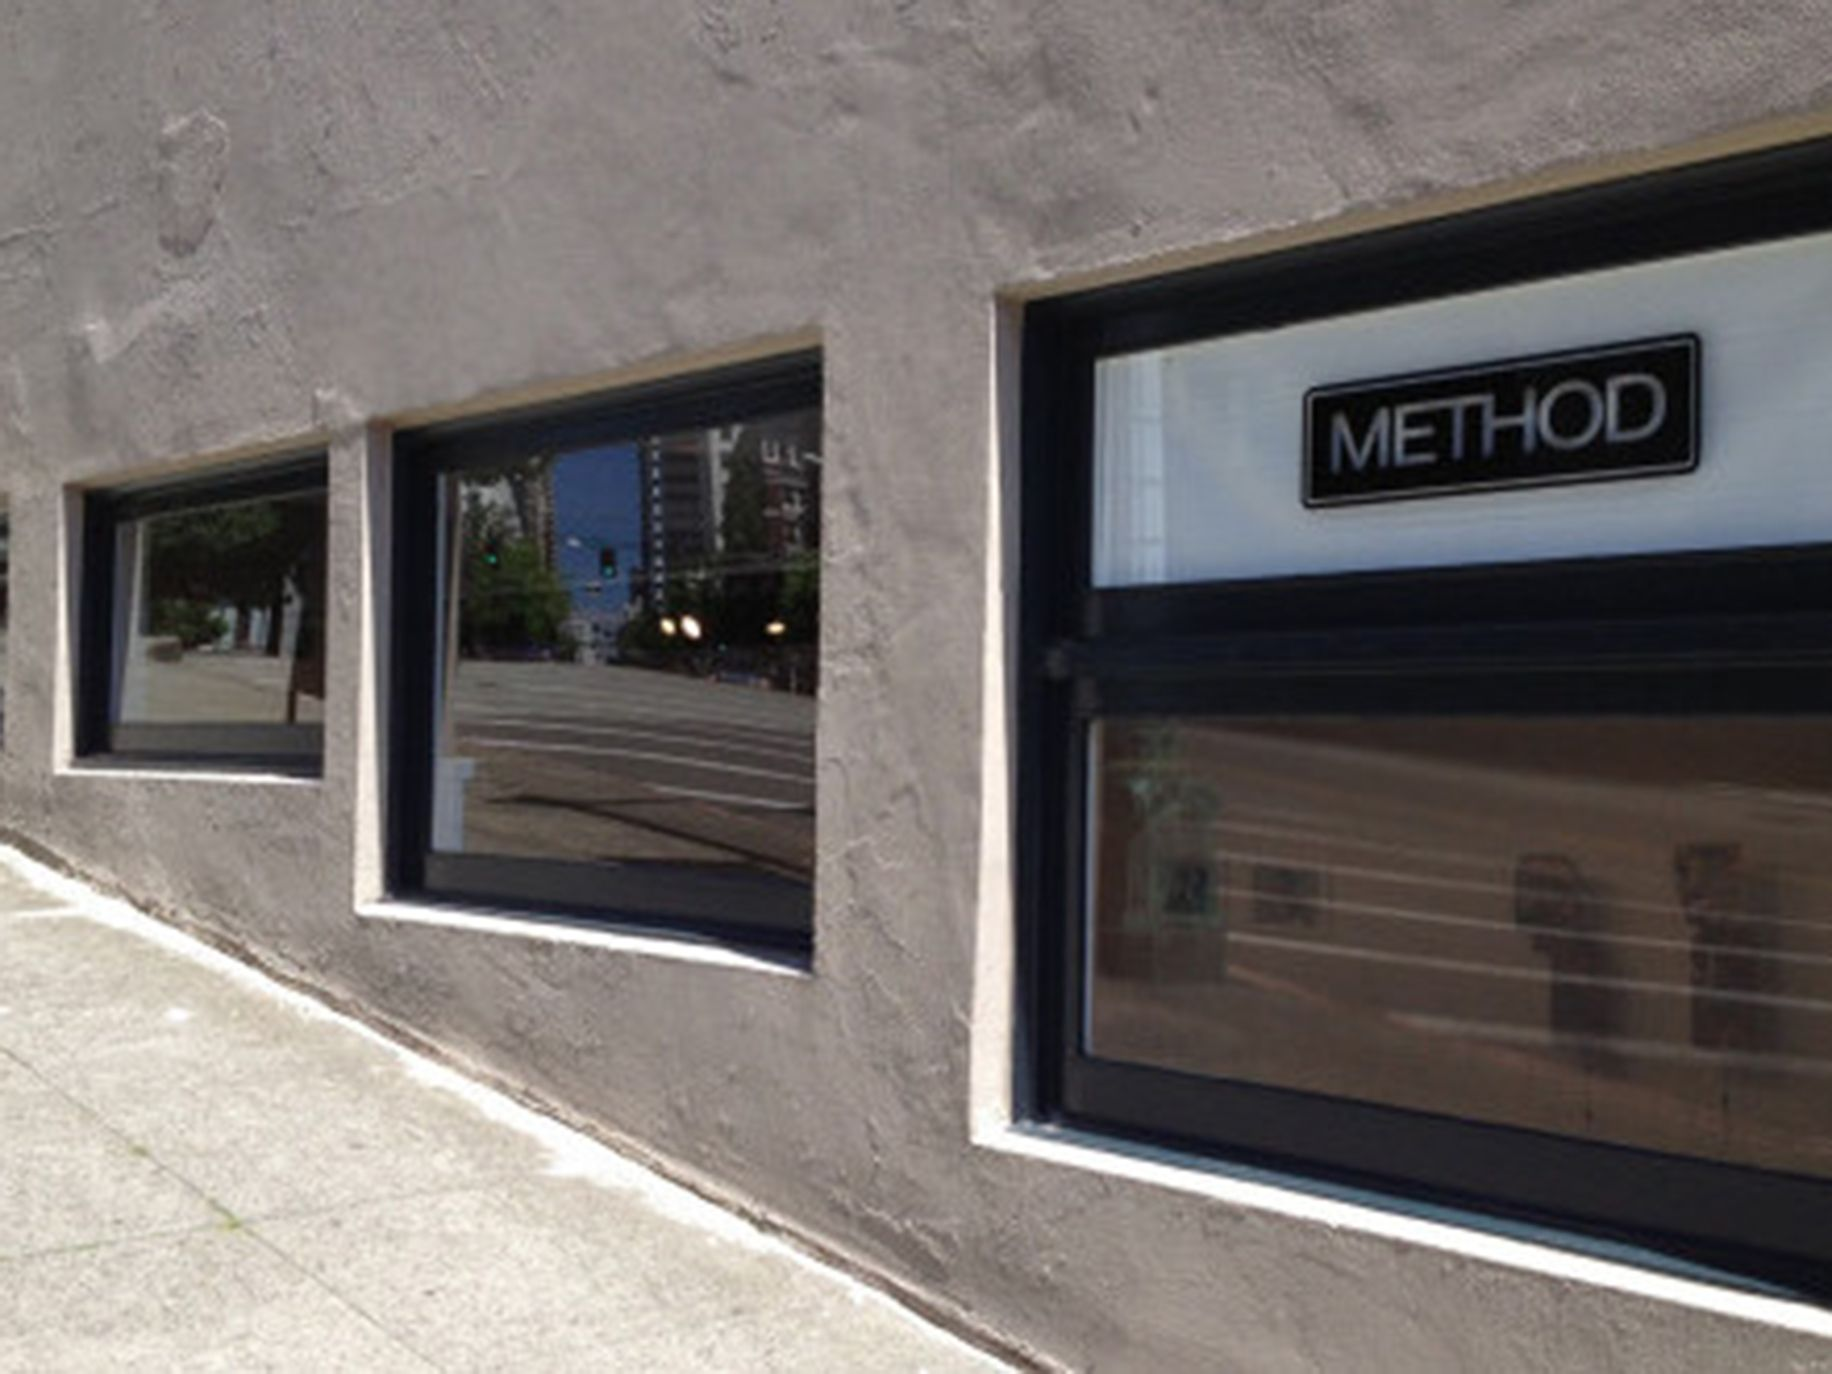 Seattle's Method features boundary-pushing artwork.